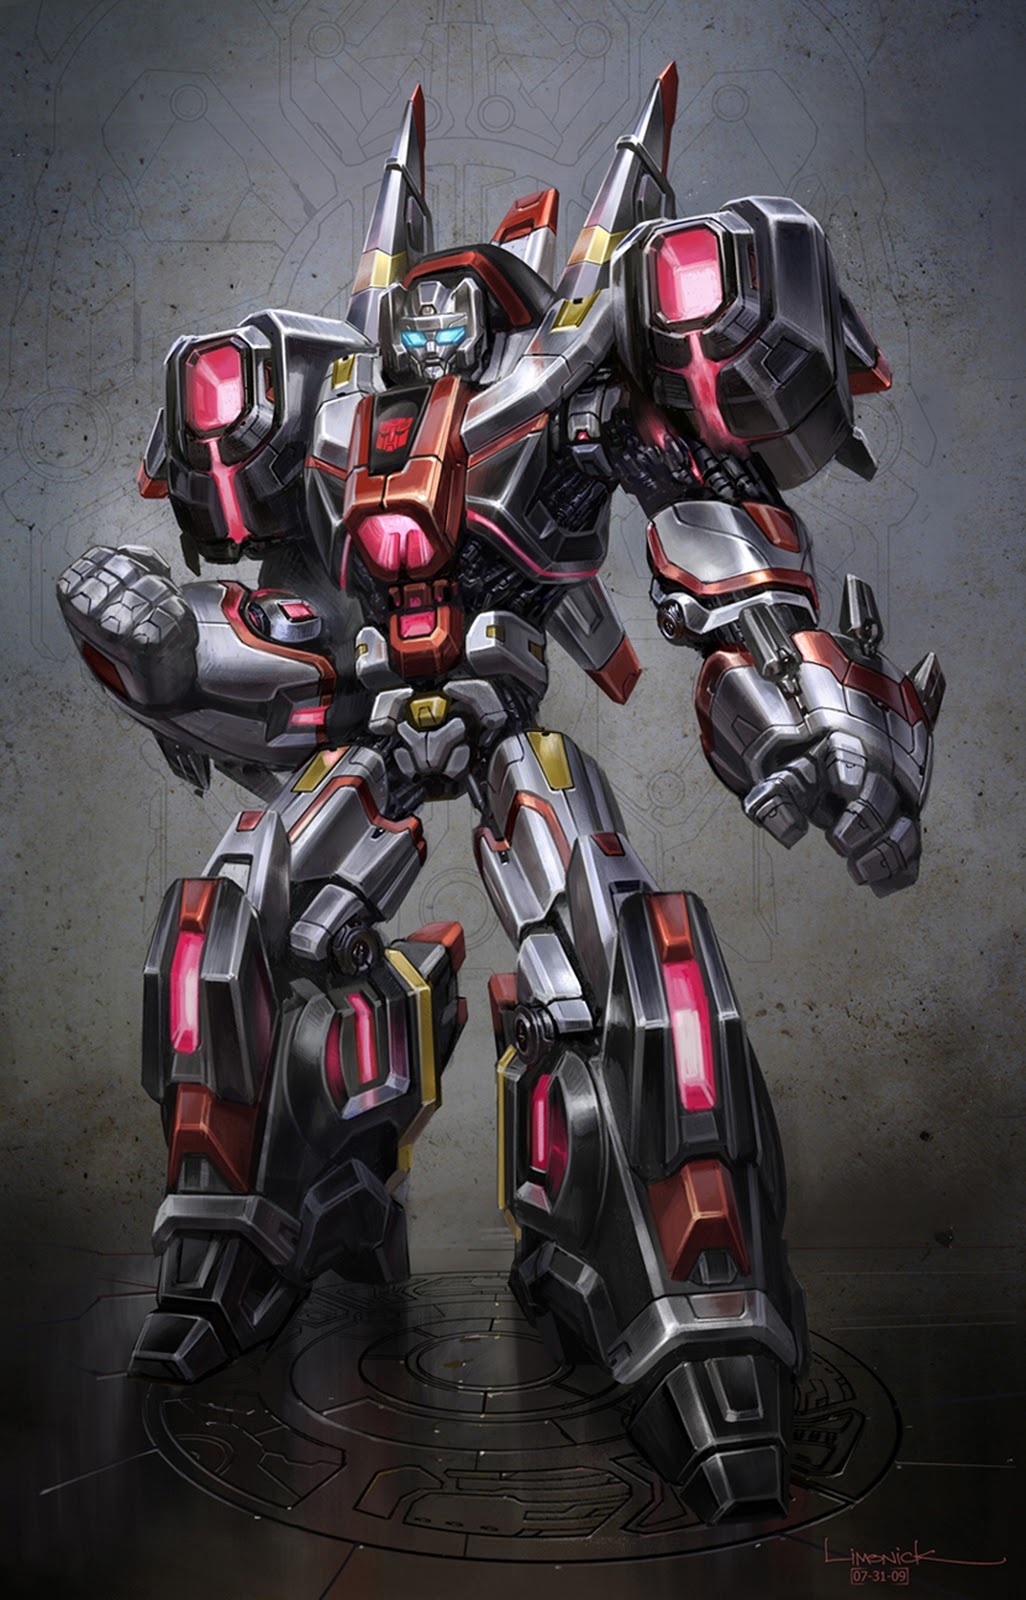 chidi okonkwo 39 s blog transformers fall of cybertron official concept art posters january. Black Bedroom Furniture Sets. Home Design Ideas